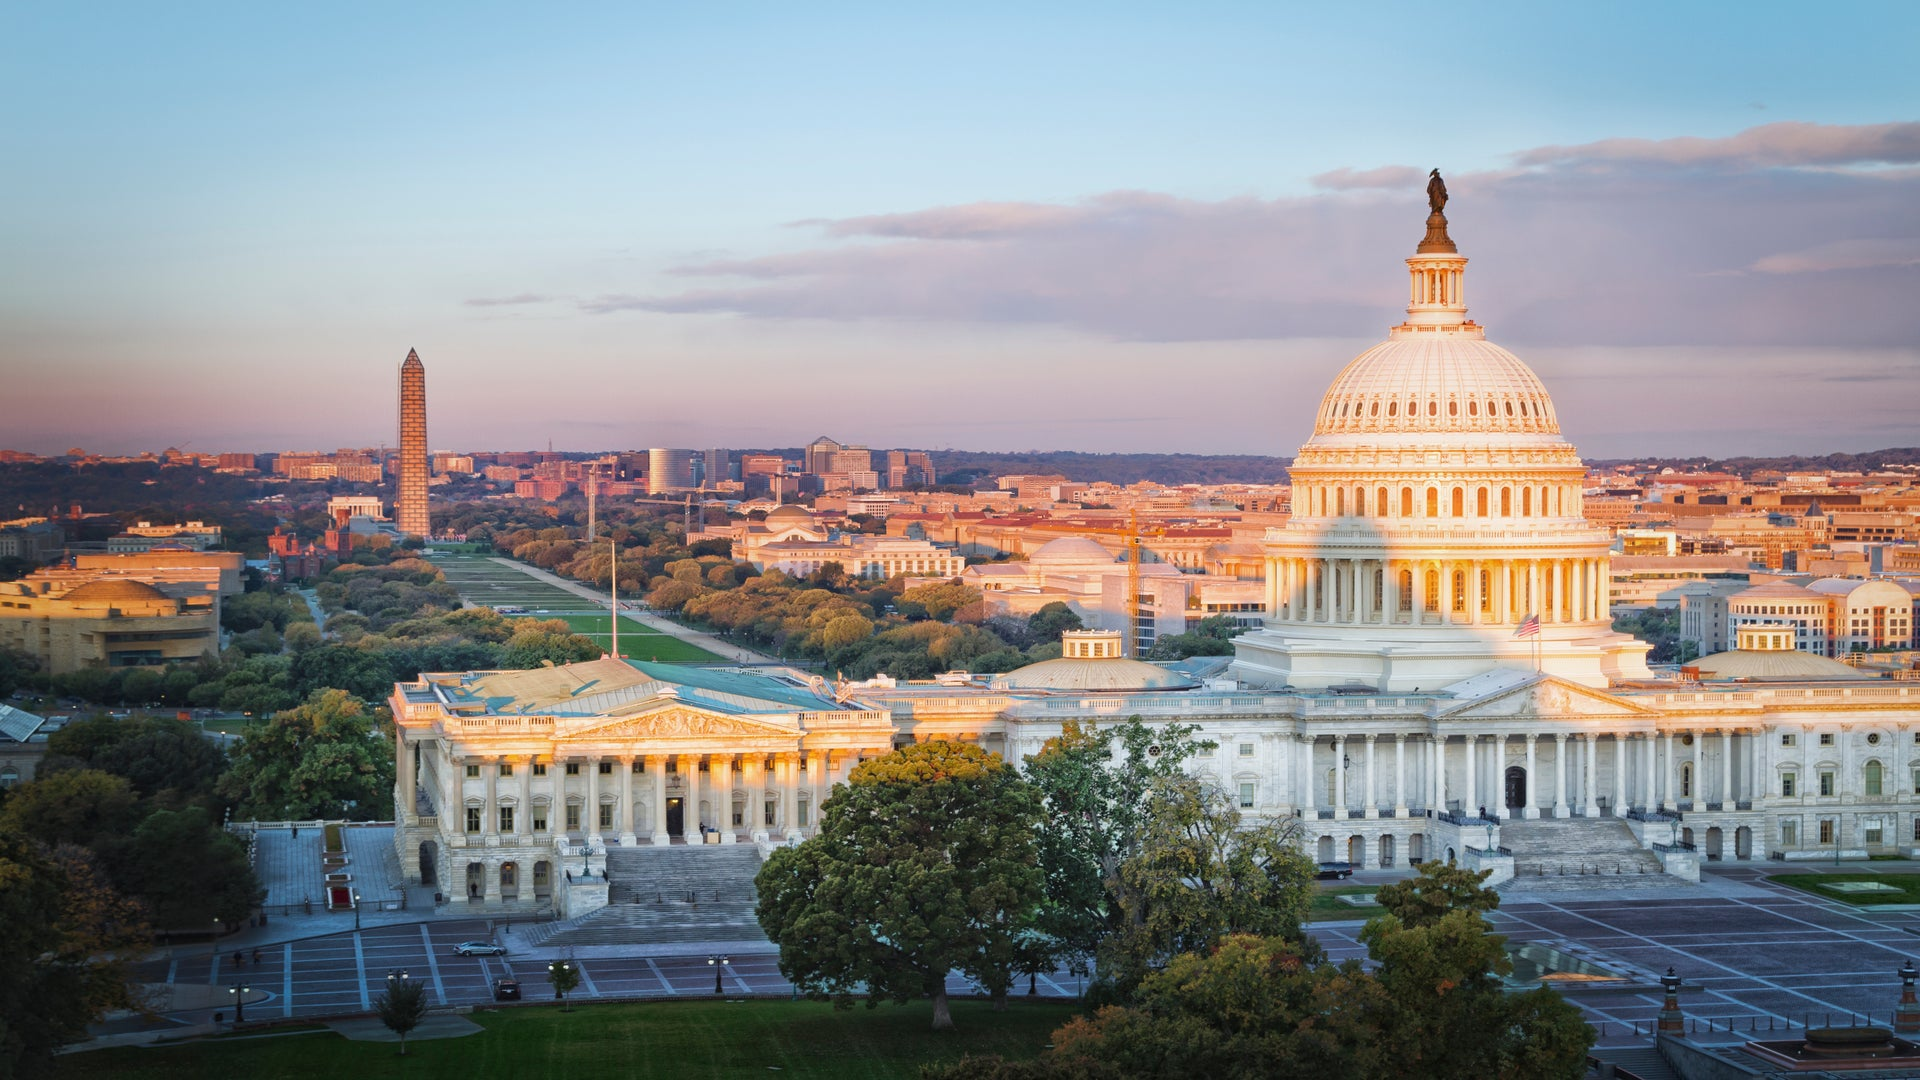 New Bill Could Make Go-go Music The Official Sound of D.C.